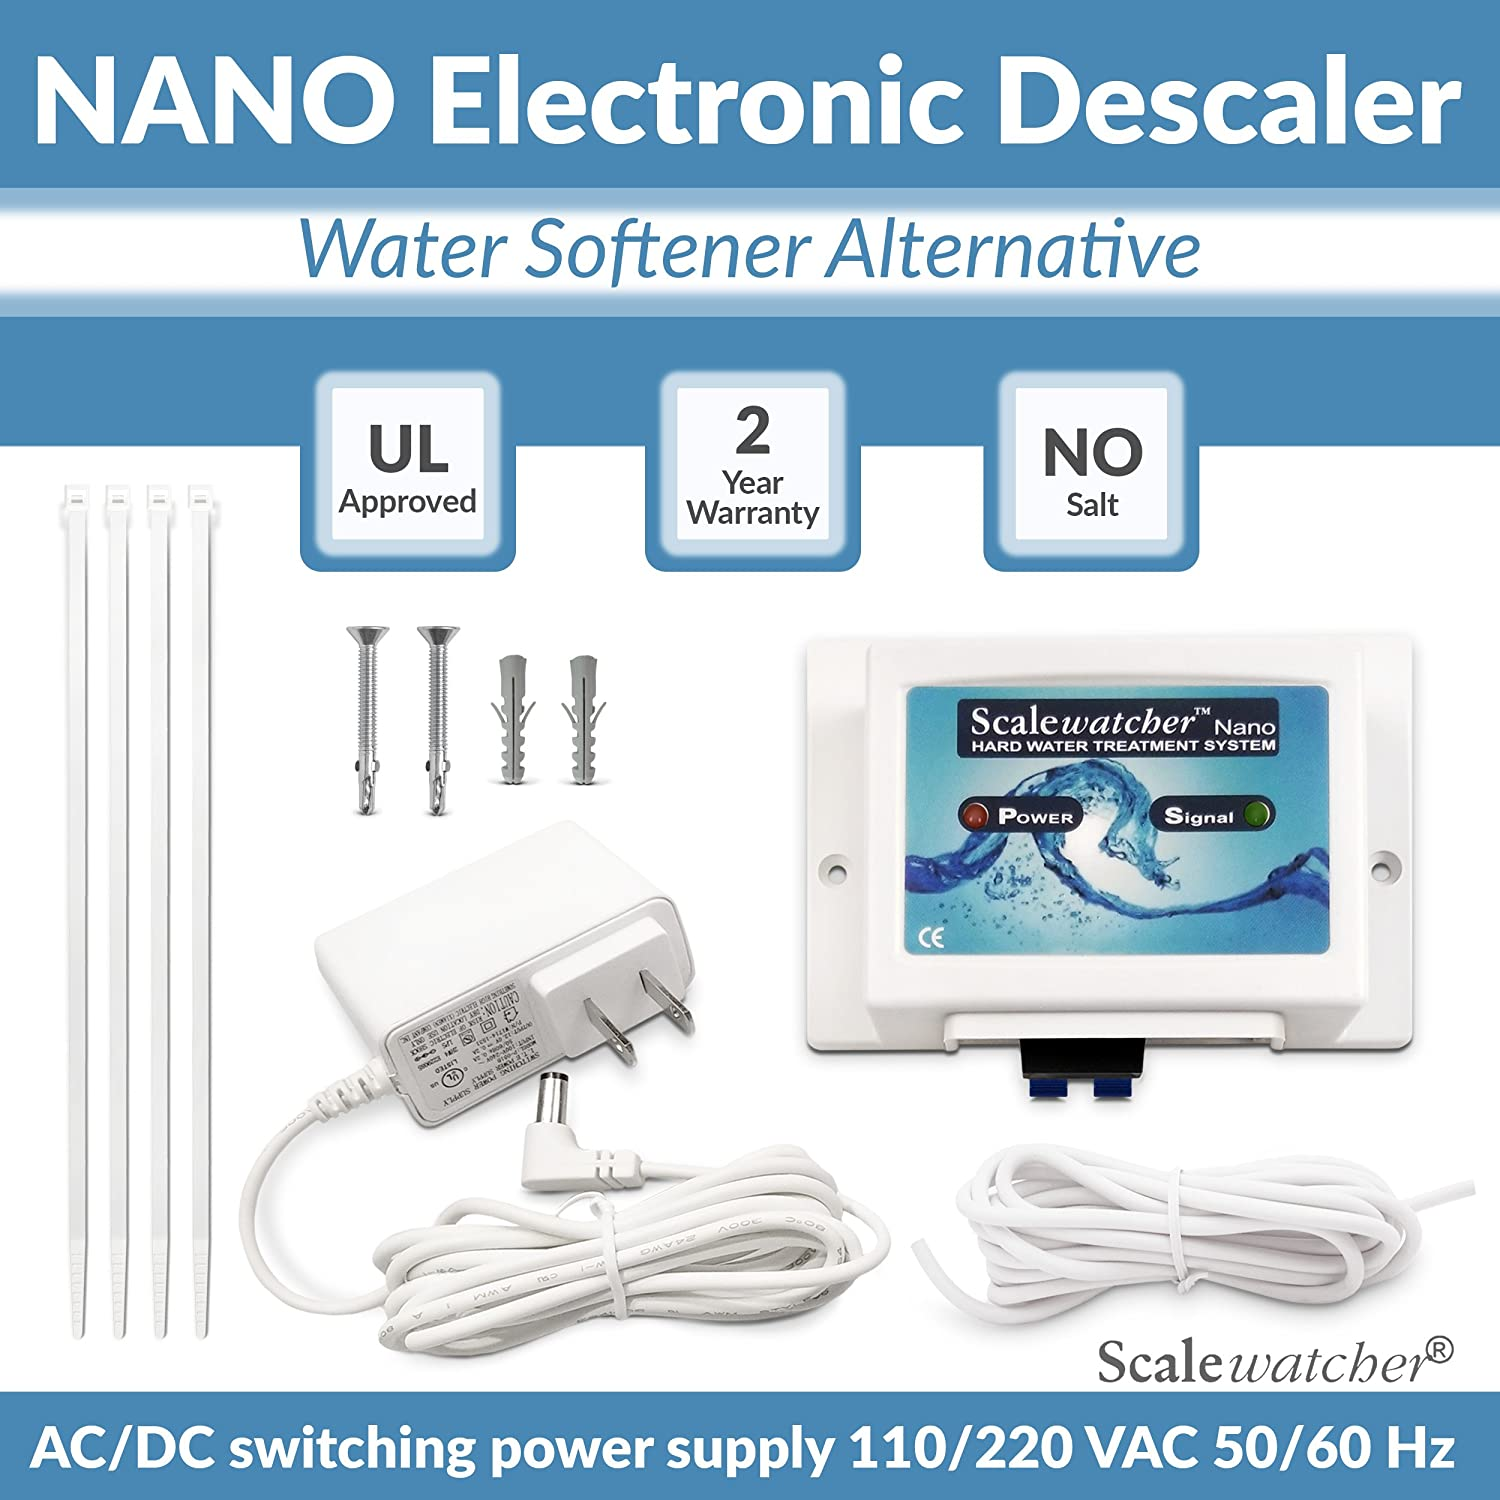 Scalewatcher Nano Original Electronic Descaler components